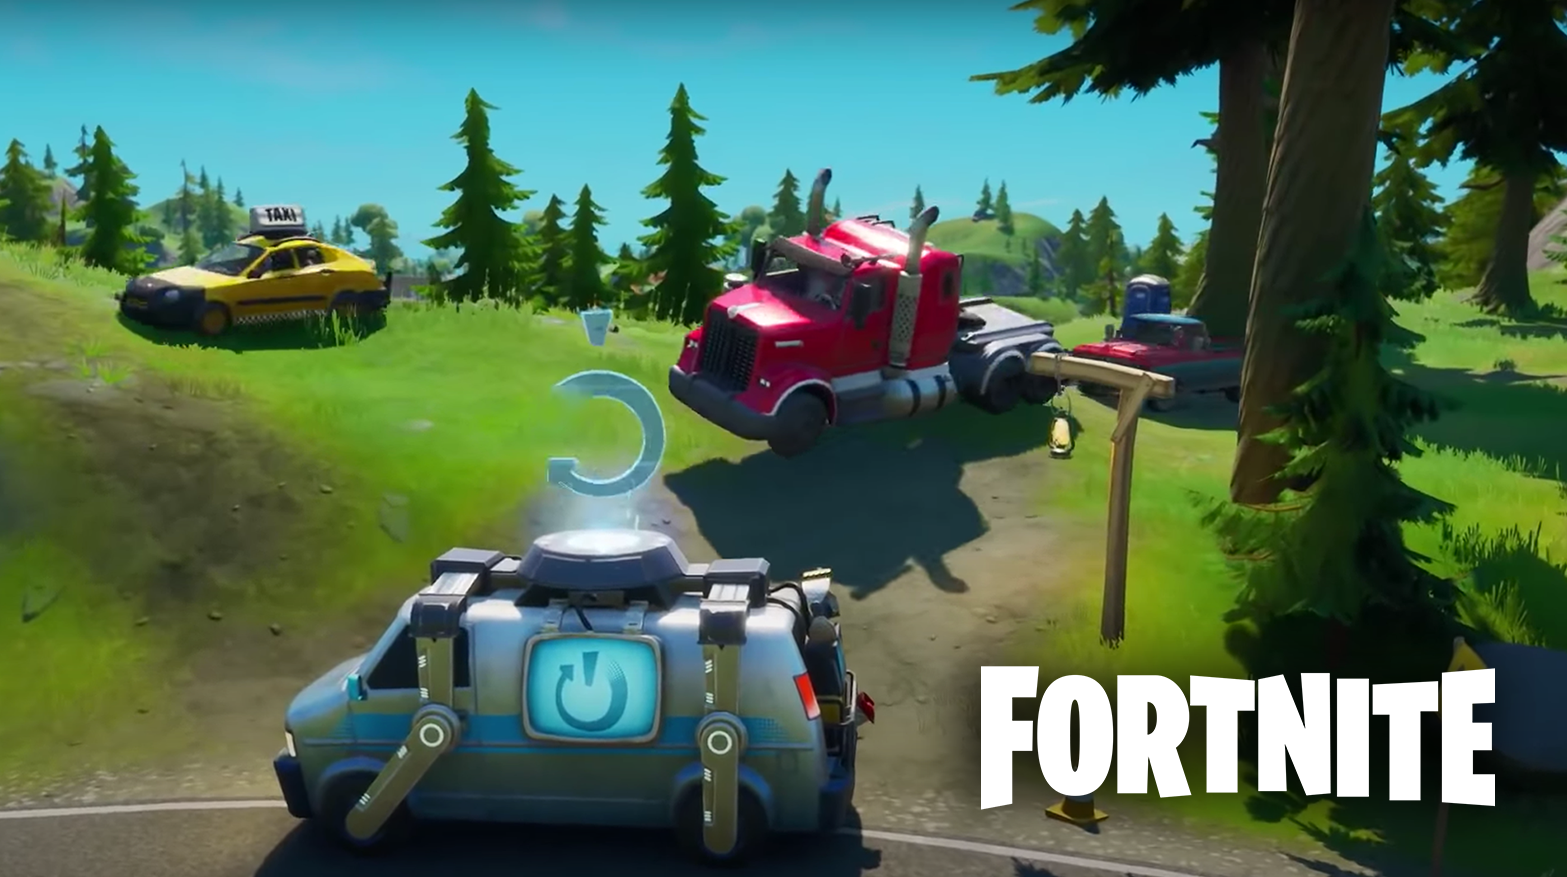 Fortnite Seasonj 3 vehicles